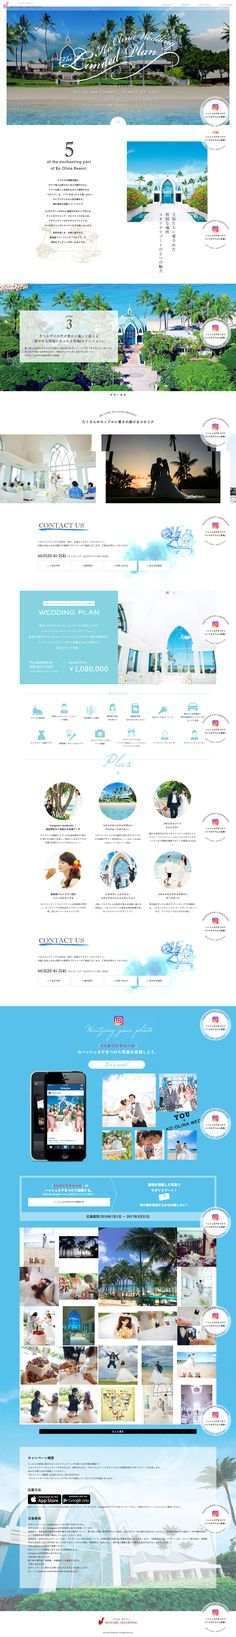 Ko Olina wedding The Limited Plan